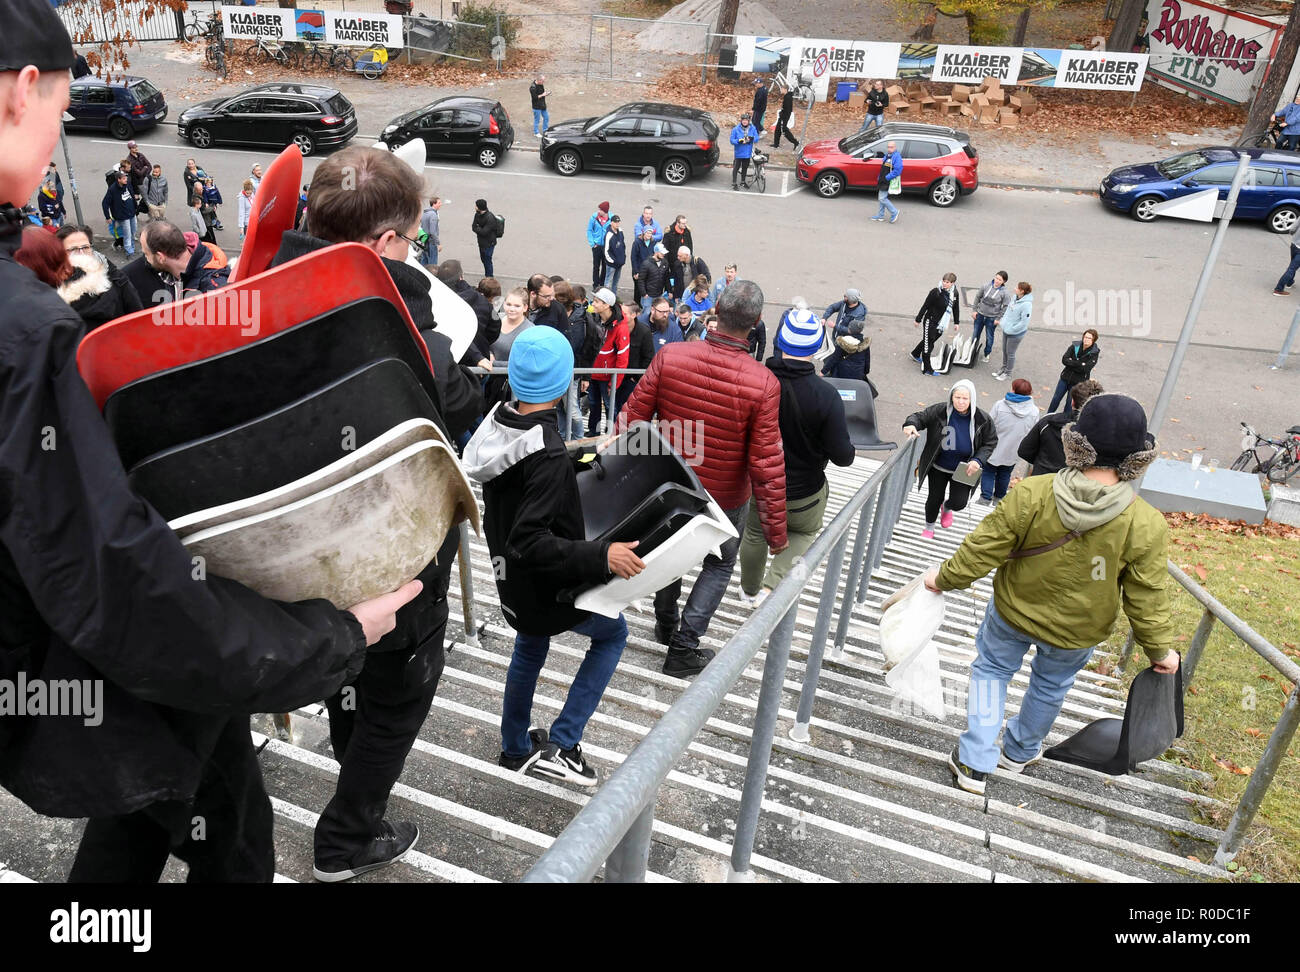 Karlsruhe, Germany. 04th Nov, 2018. Fans of the third-league soccer team Karlsruher SC wear seat shells from the Wildparkstadion Karlsruhe, which they previously dismantled there. Before the demolition work on blocks A1 to A4 begins in the stadium on 05.11.2018, KSC fans can secure up to ten seat shells for five euros each. According to the association, the proceeds from the fan campaign will be donated to the youngsters of Karlsruher SC. Credit: Uli Deck/dpa/Alamy Live News - Stock Image